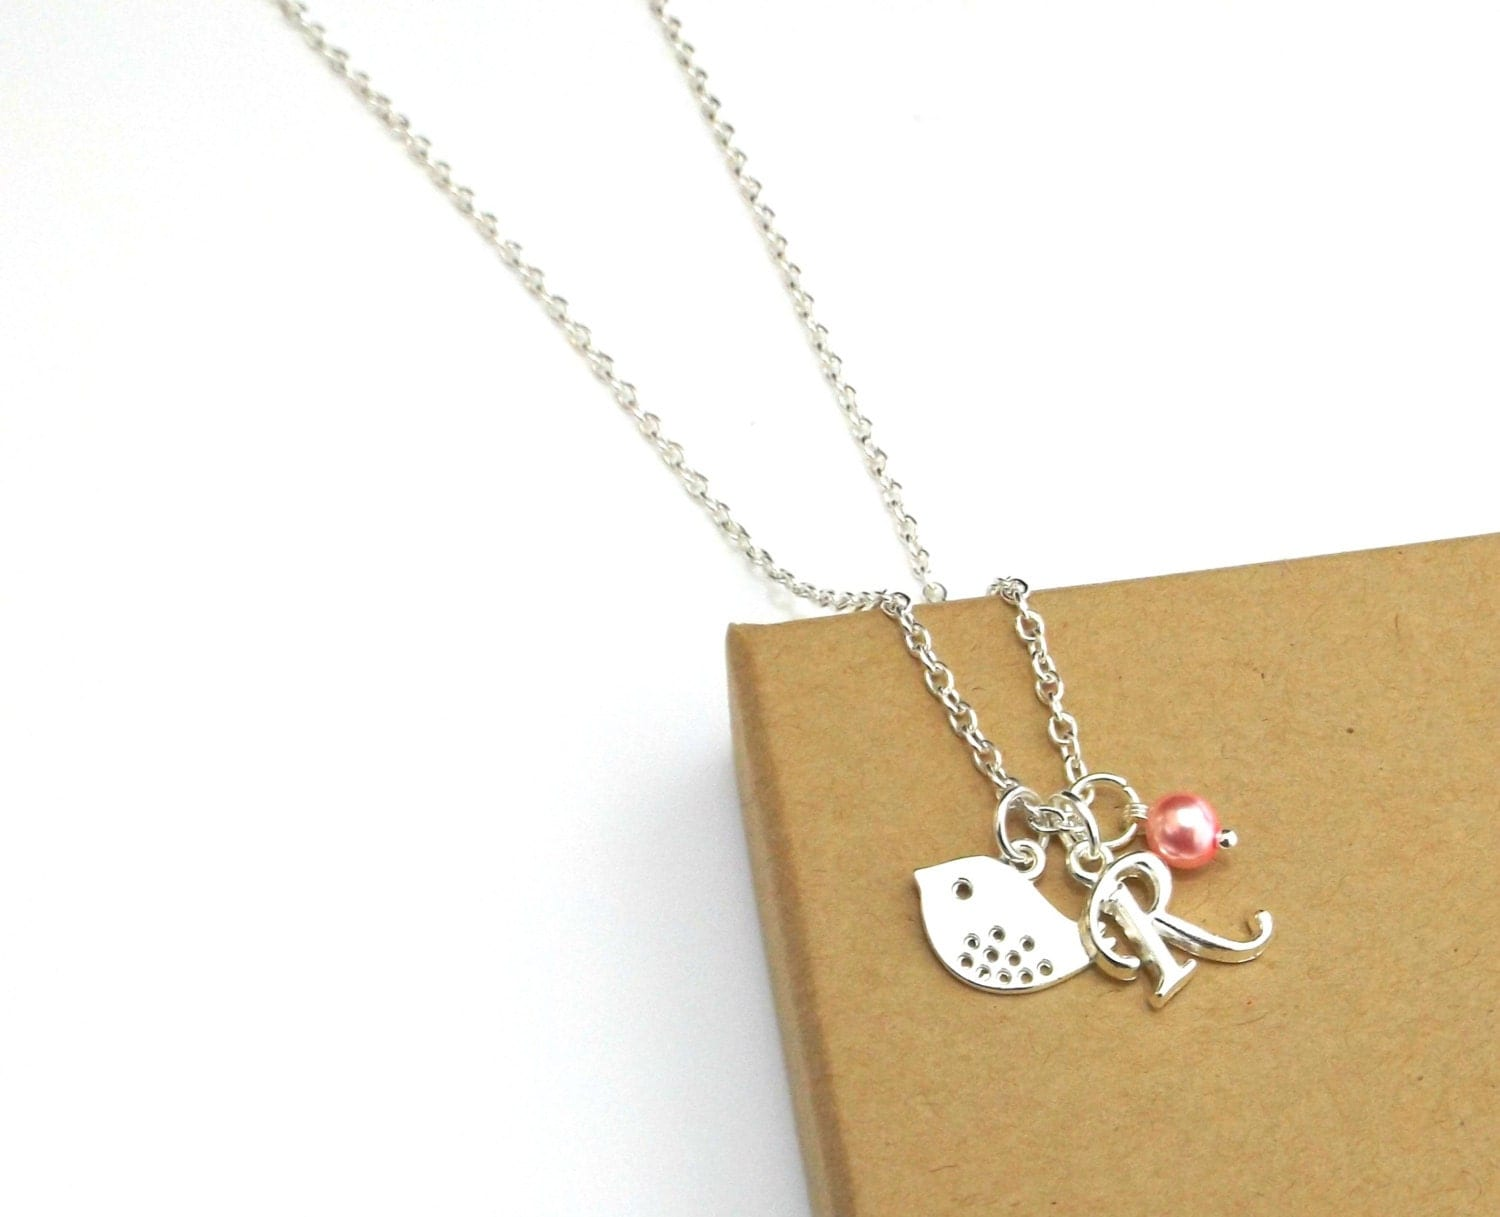 bridesmaid necklaces bird necklace initial necklace